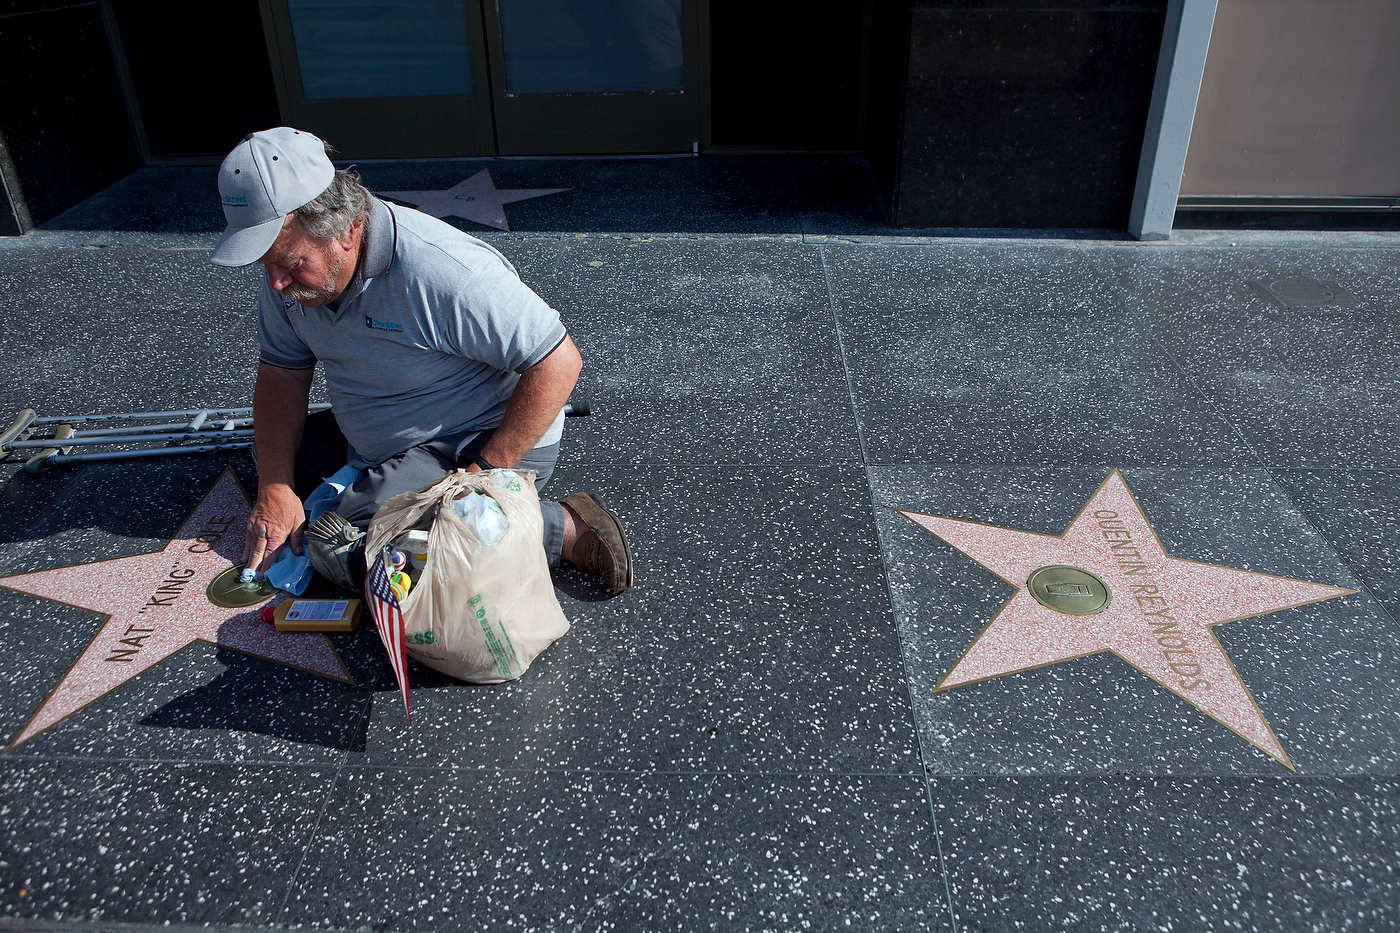 A one legged man polishes stars on Hollywood Boulevard, Line 302.